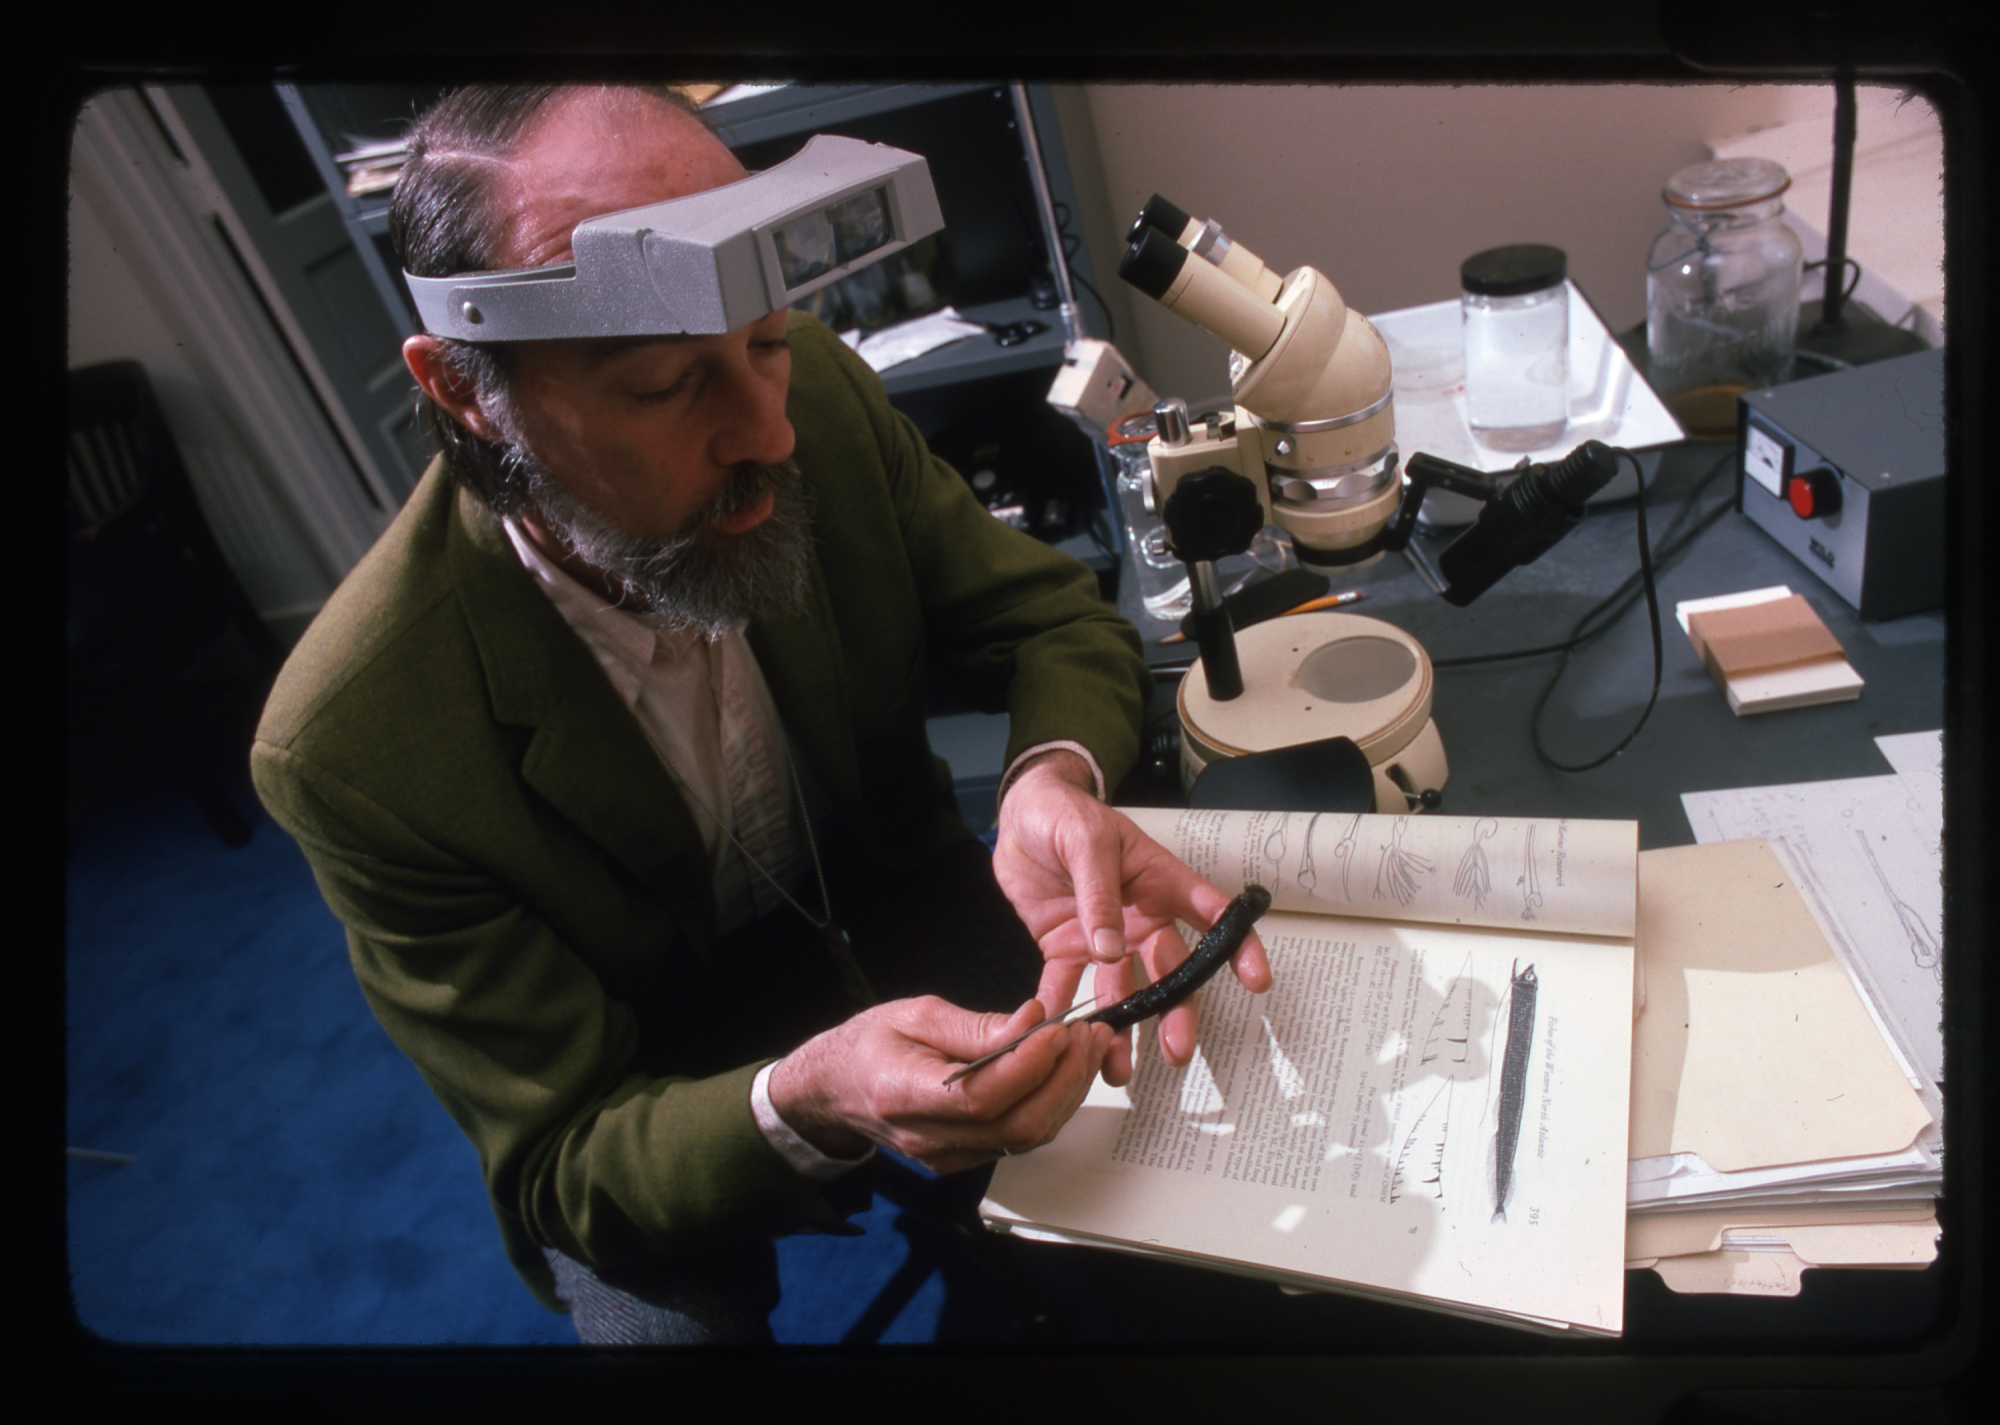 Ichthyologist Robert Gibbs, National Museum of Natural History curator, examining a fish, 1975.